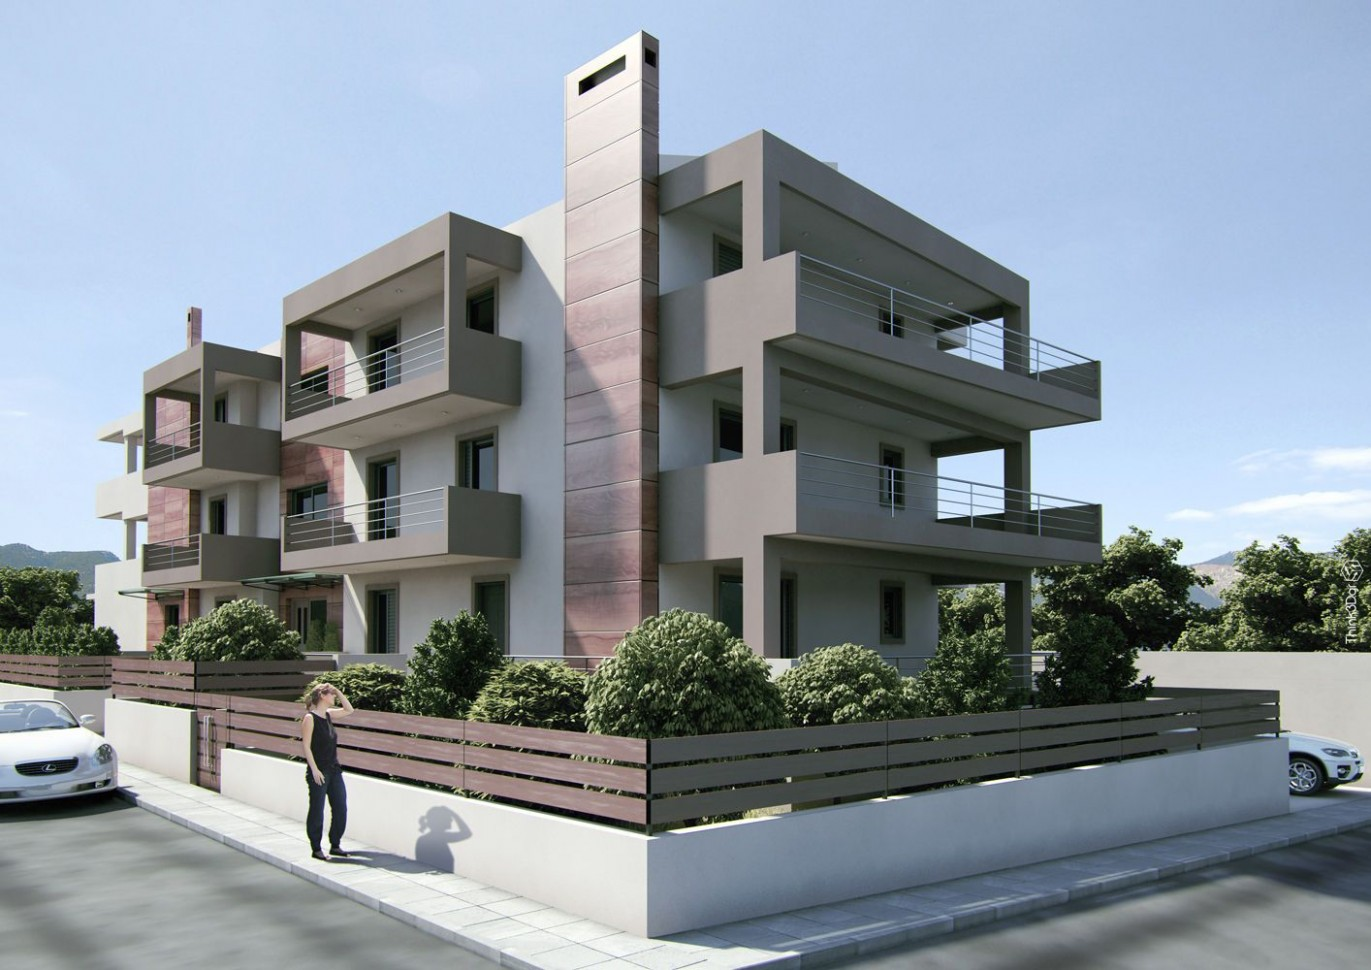 Apartment Building 9  Small apartment building, Modern apartment  - Apartment Design By Architects